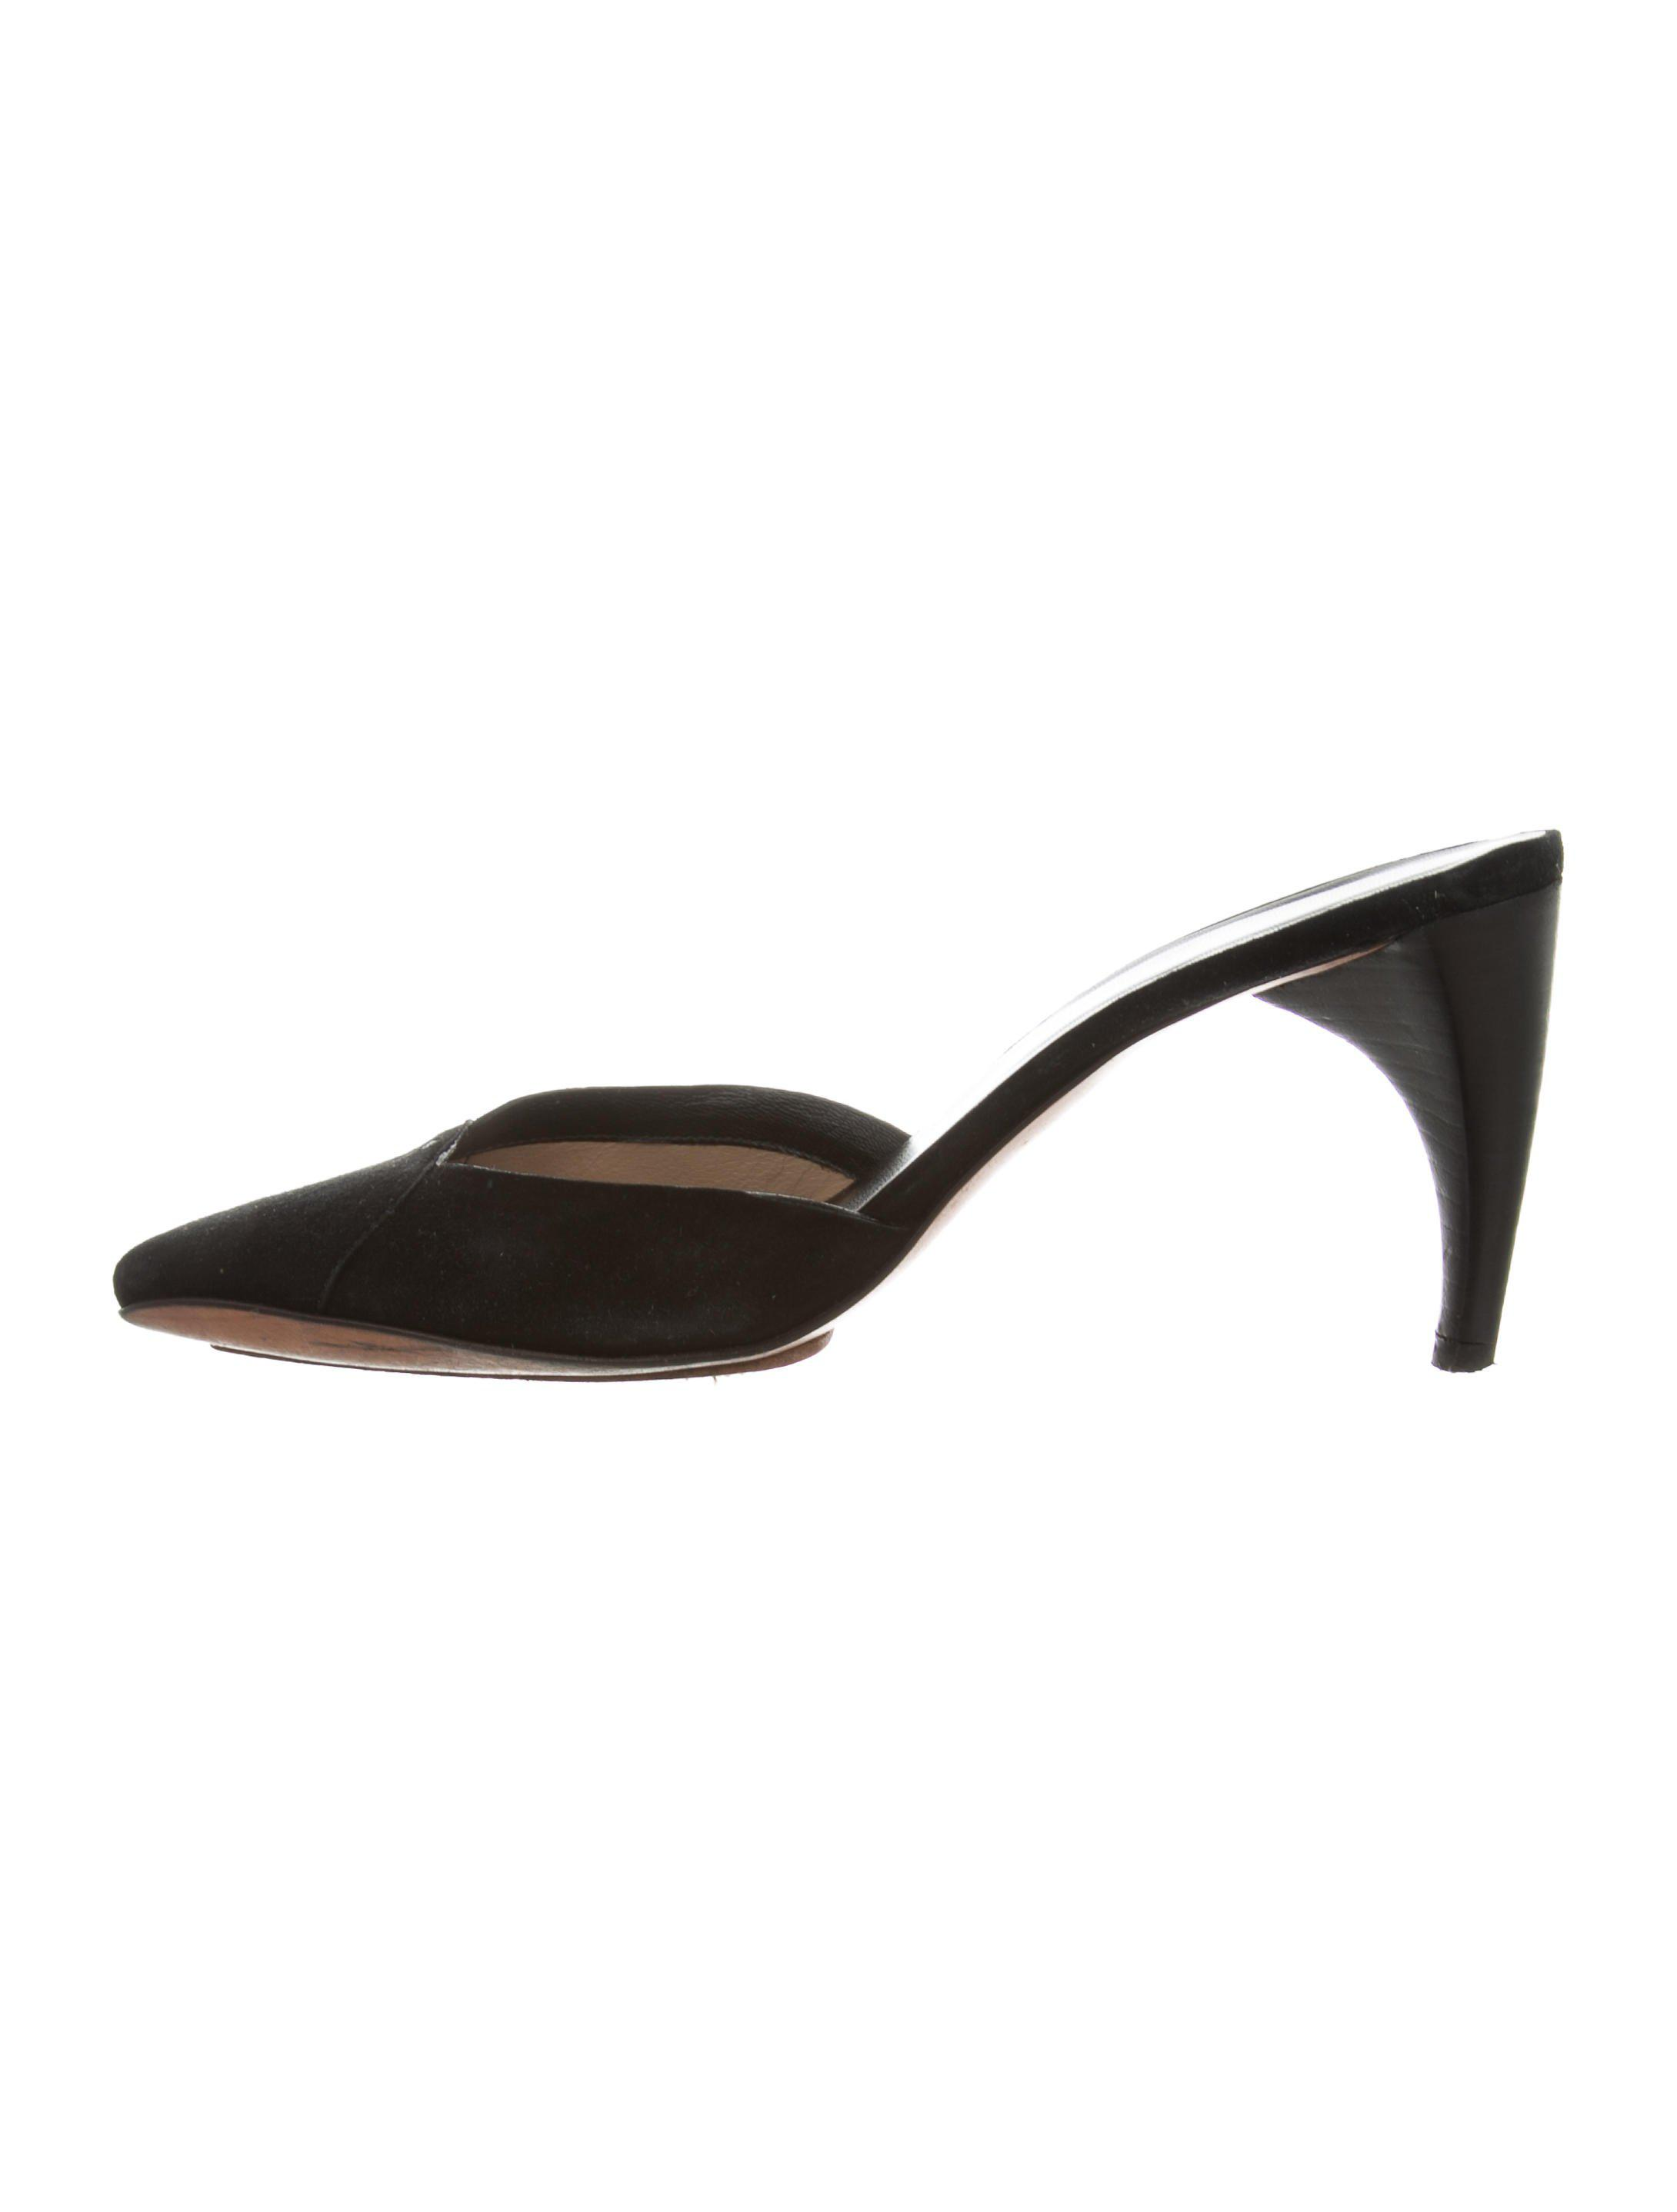 b643f5deee1040 Lyst - Costume National Suede Pointed-toe Mules in Black